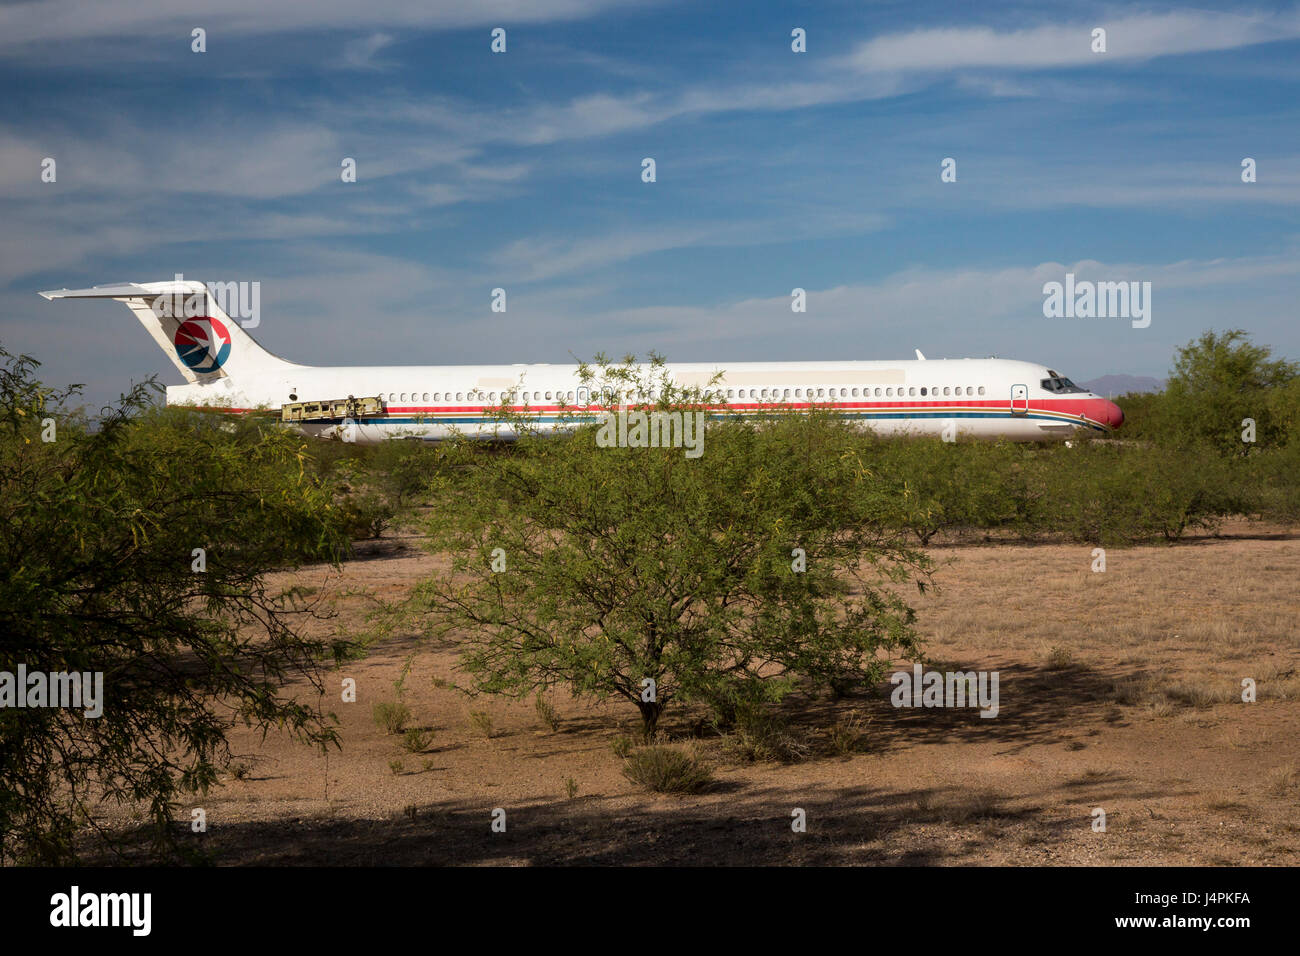 Marana, Arizona - Unused commercial jet airliners are stored at the Pinal Airpark in the Sonoran Desert. Some airliners - Stock Image